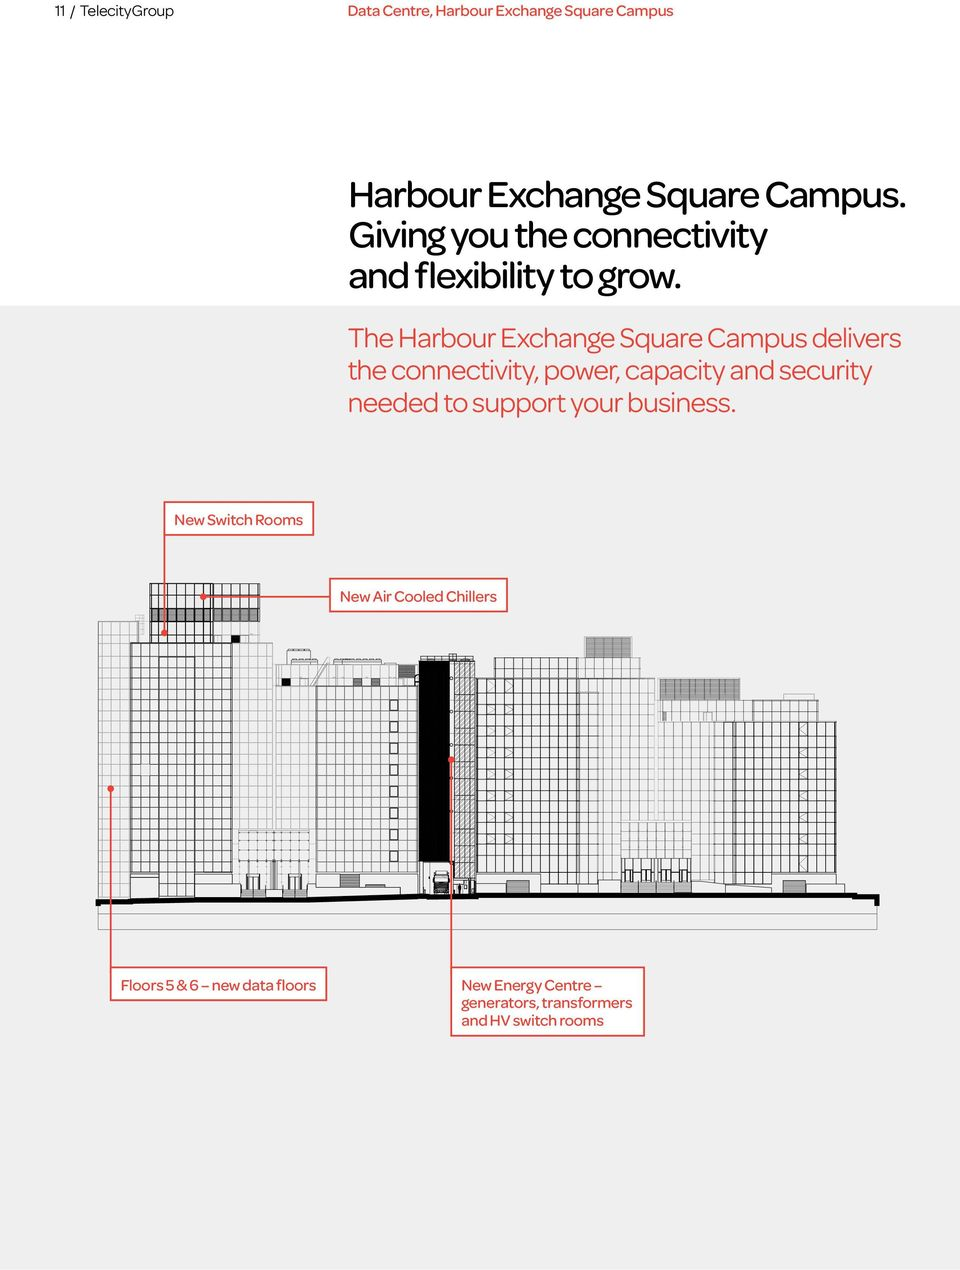 The Harbour Exchange Square Campus delivers the connectivity, power, capacity and security